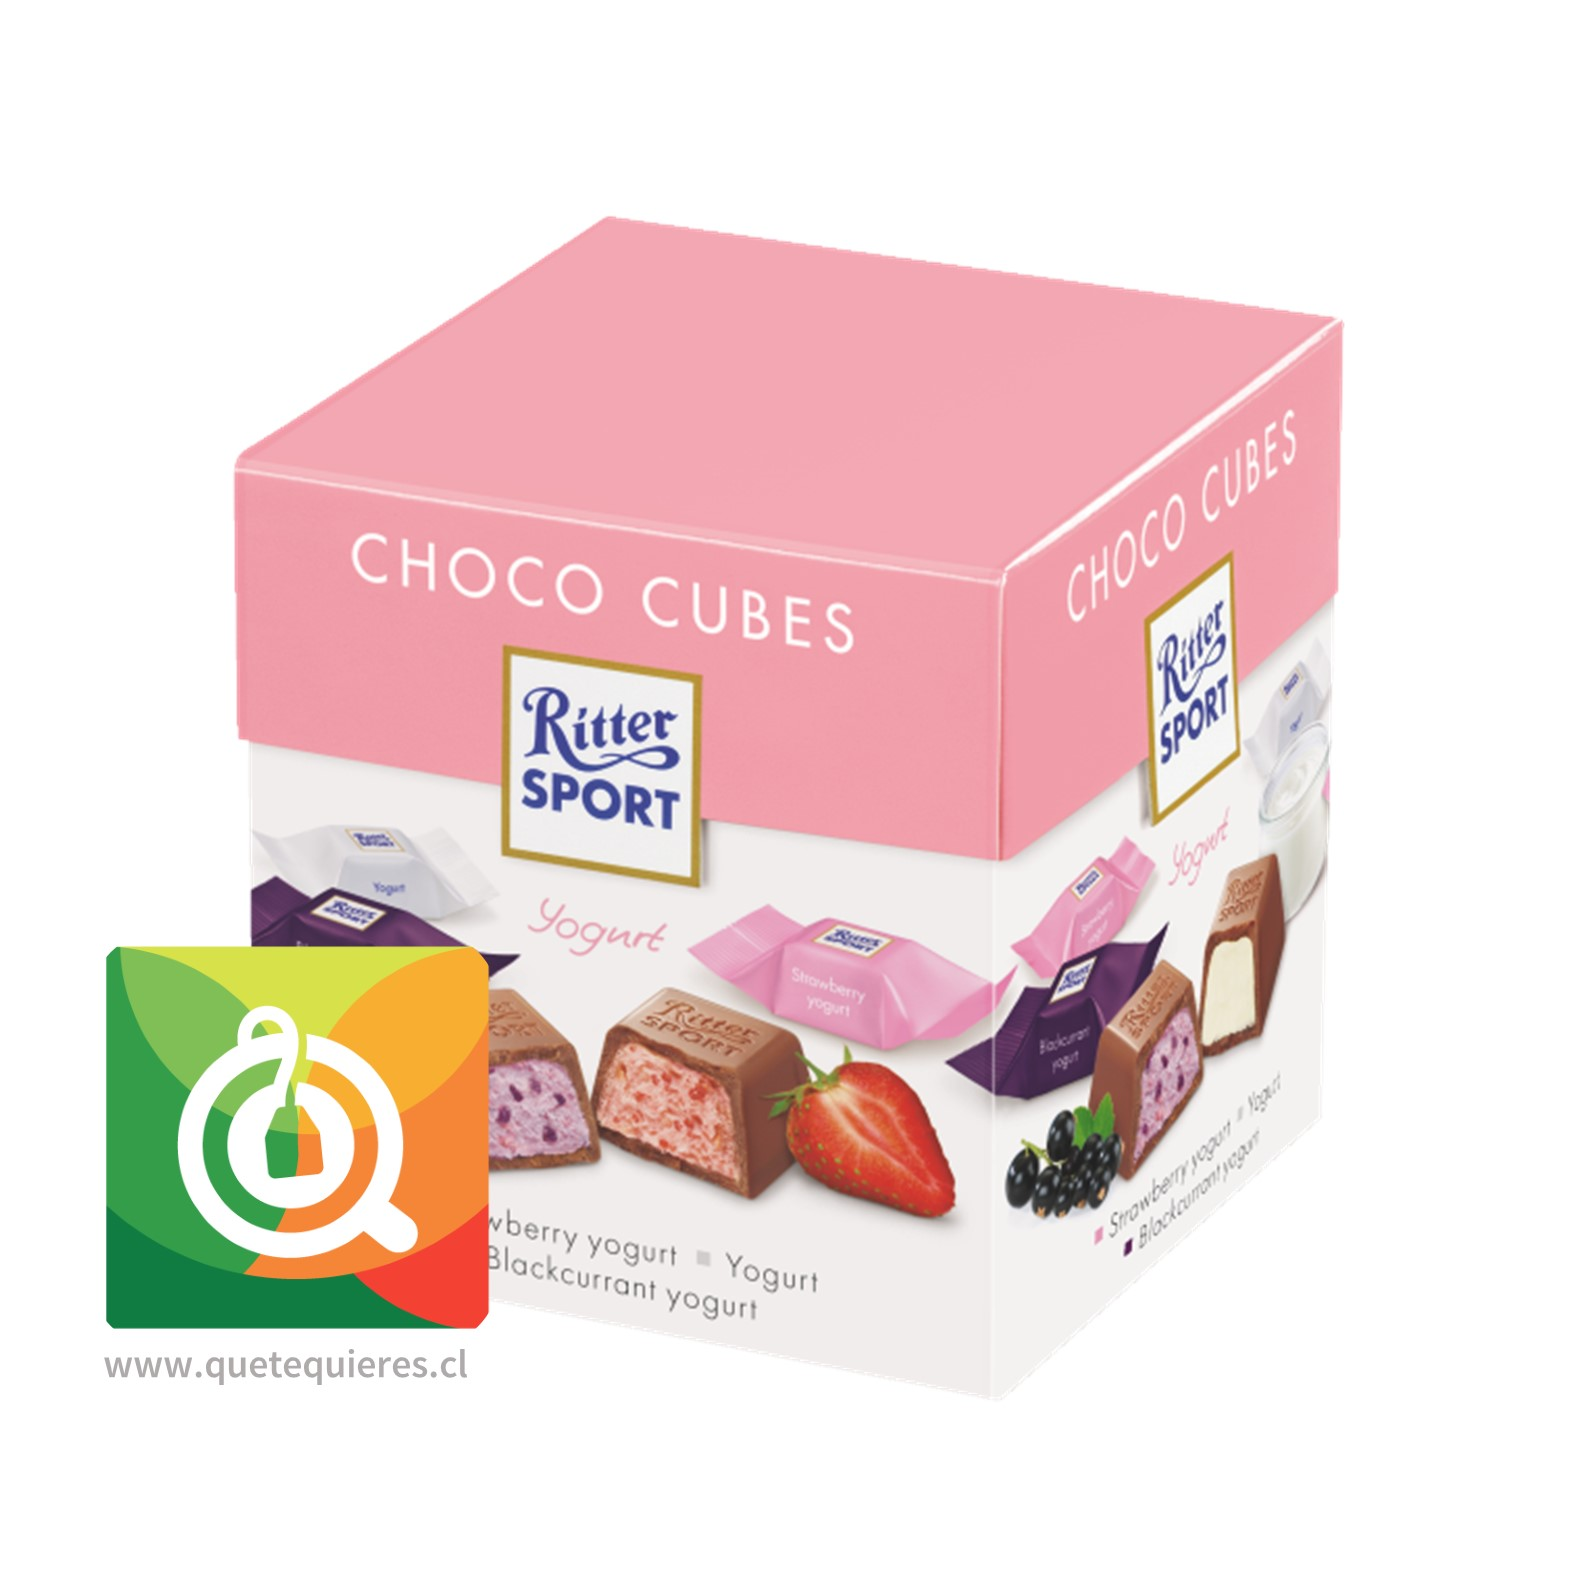 Ritter Sport Choco Cubes Yogurt -  22 Chocolates en Cuadritos